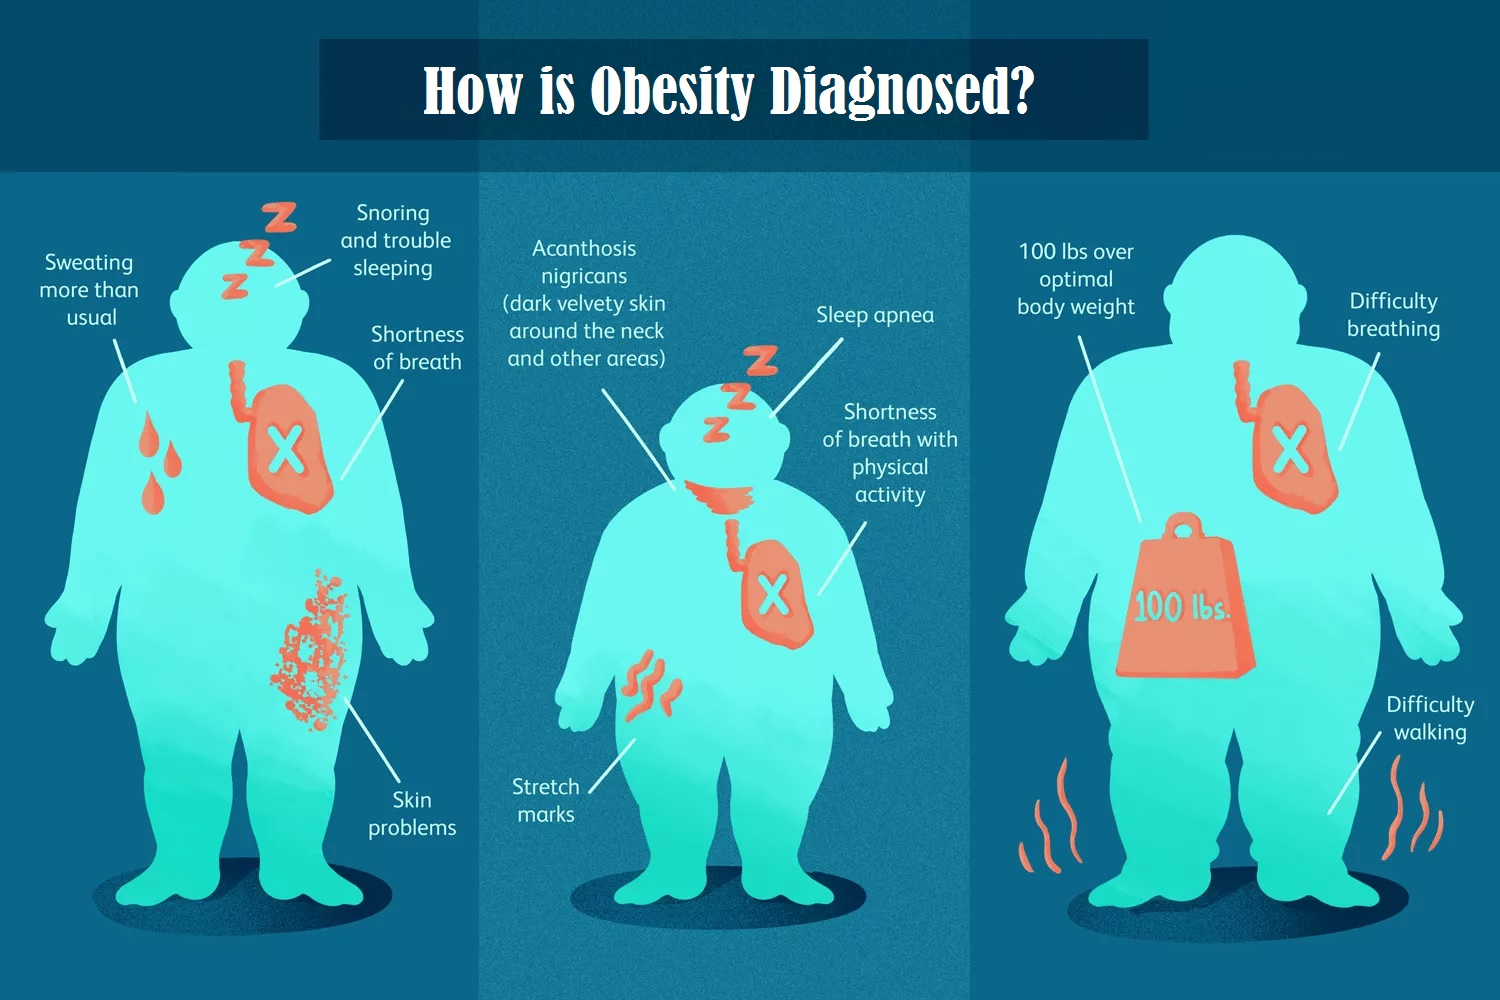 How is Obesity Diagnosed?